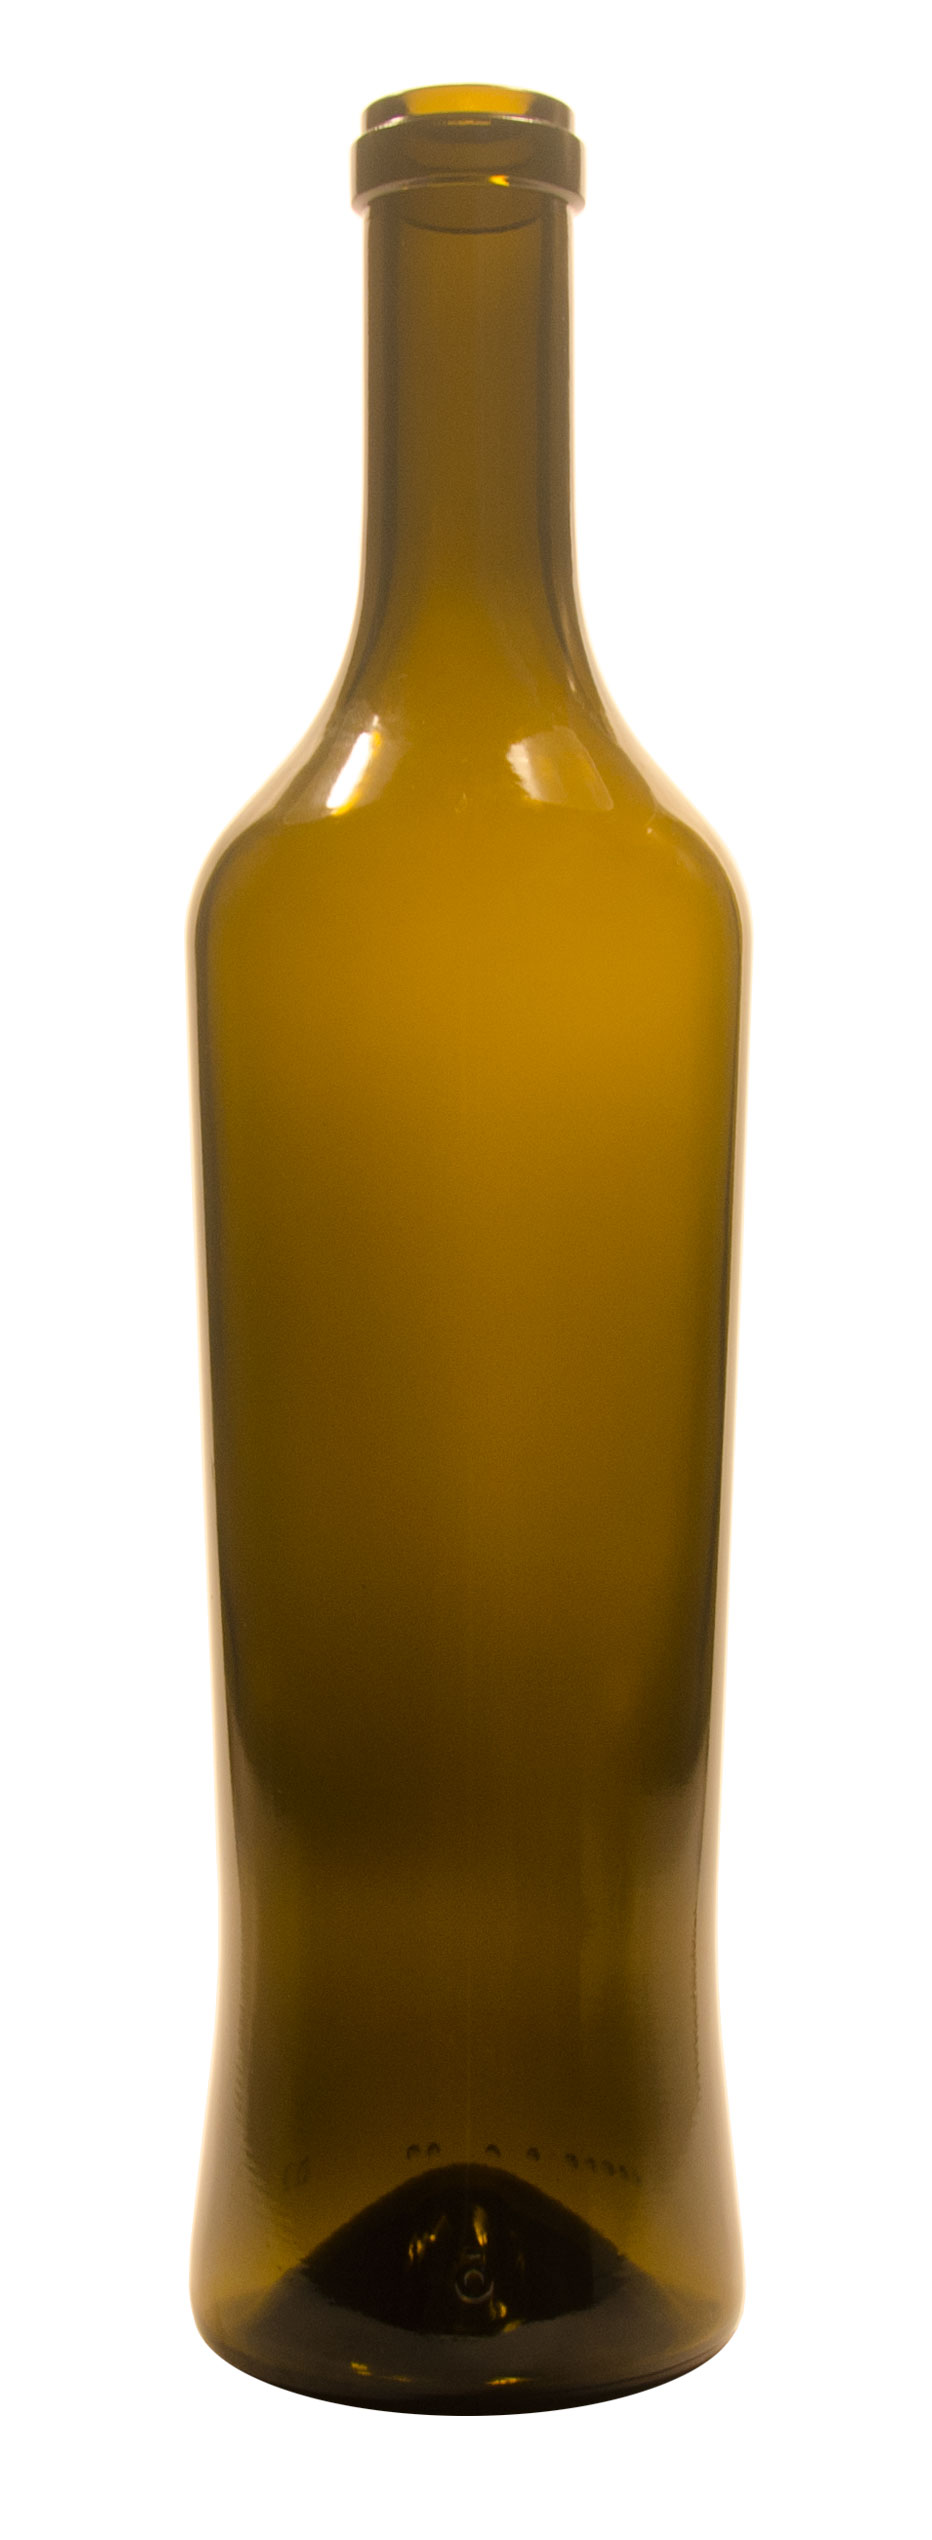 Laurie_750ml_antique_green_wine_bottle_B